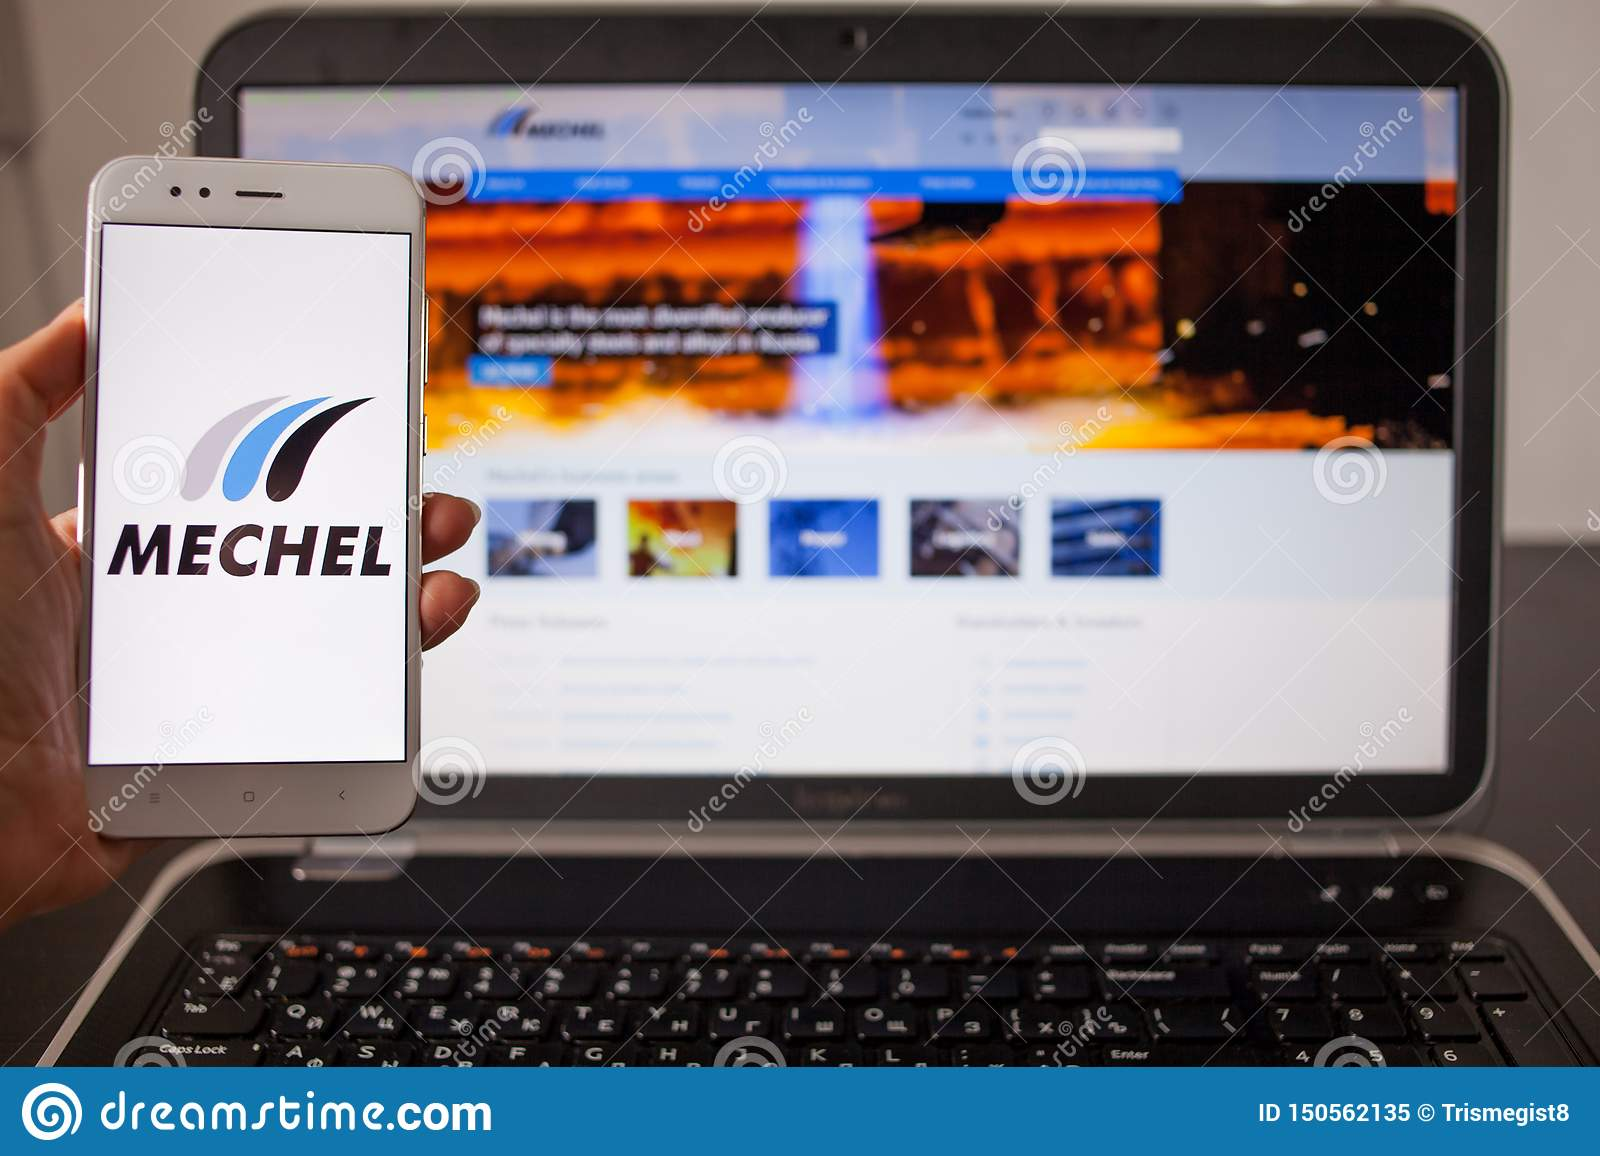 SAINT PETERSBURG, RUSSIA - MAY 14, 2019: Website and logo of the Russian company Mechel on the screens of gadgets